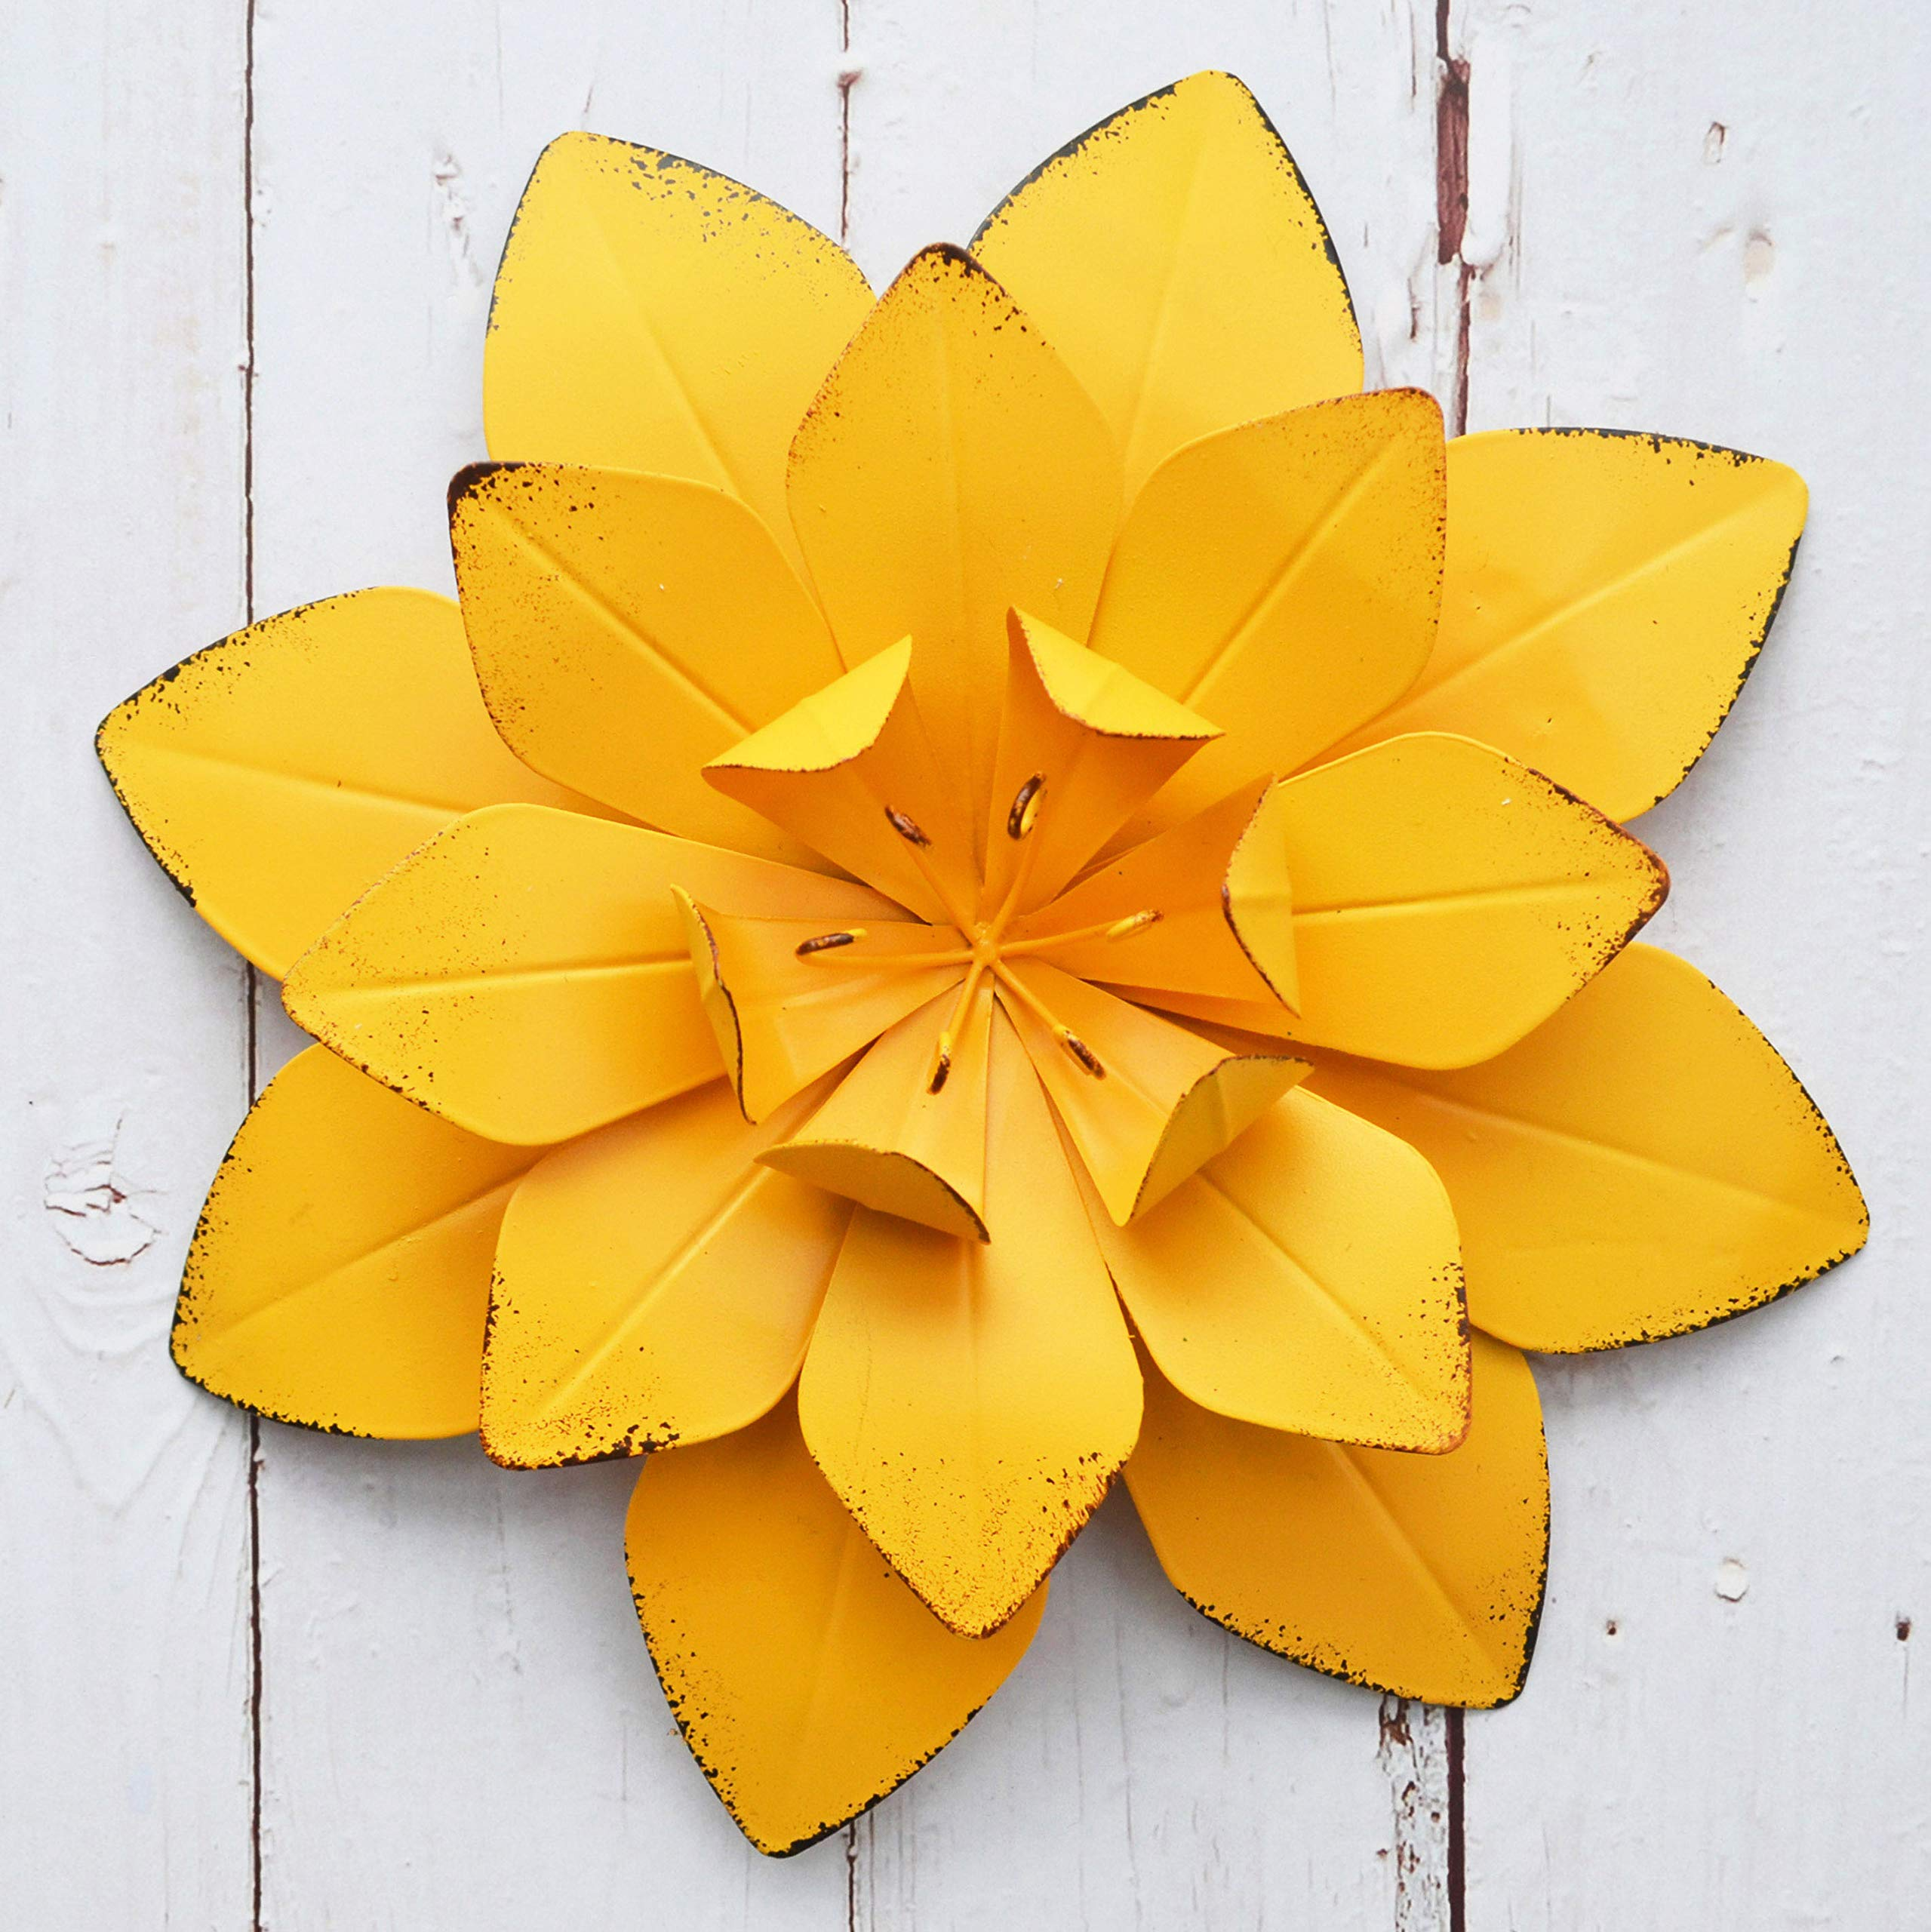 GIFTME 5 Yellow Metal Layered Flower Wall Decor for Bathroom Livingroom Garden Indoor or Outdoor Wall Sculptures(10X2 inch) by GIFTME 5